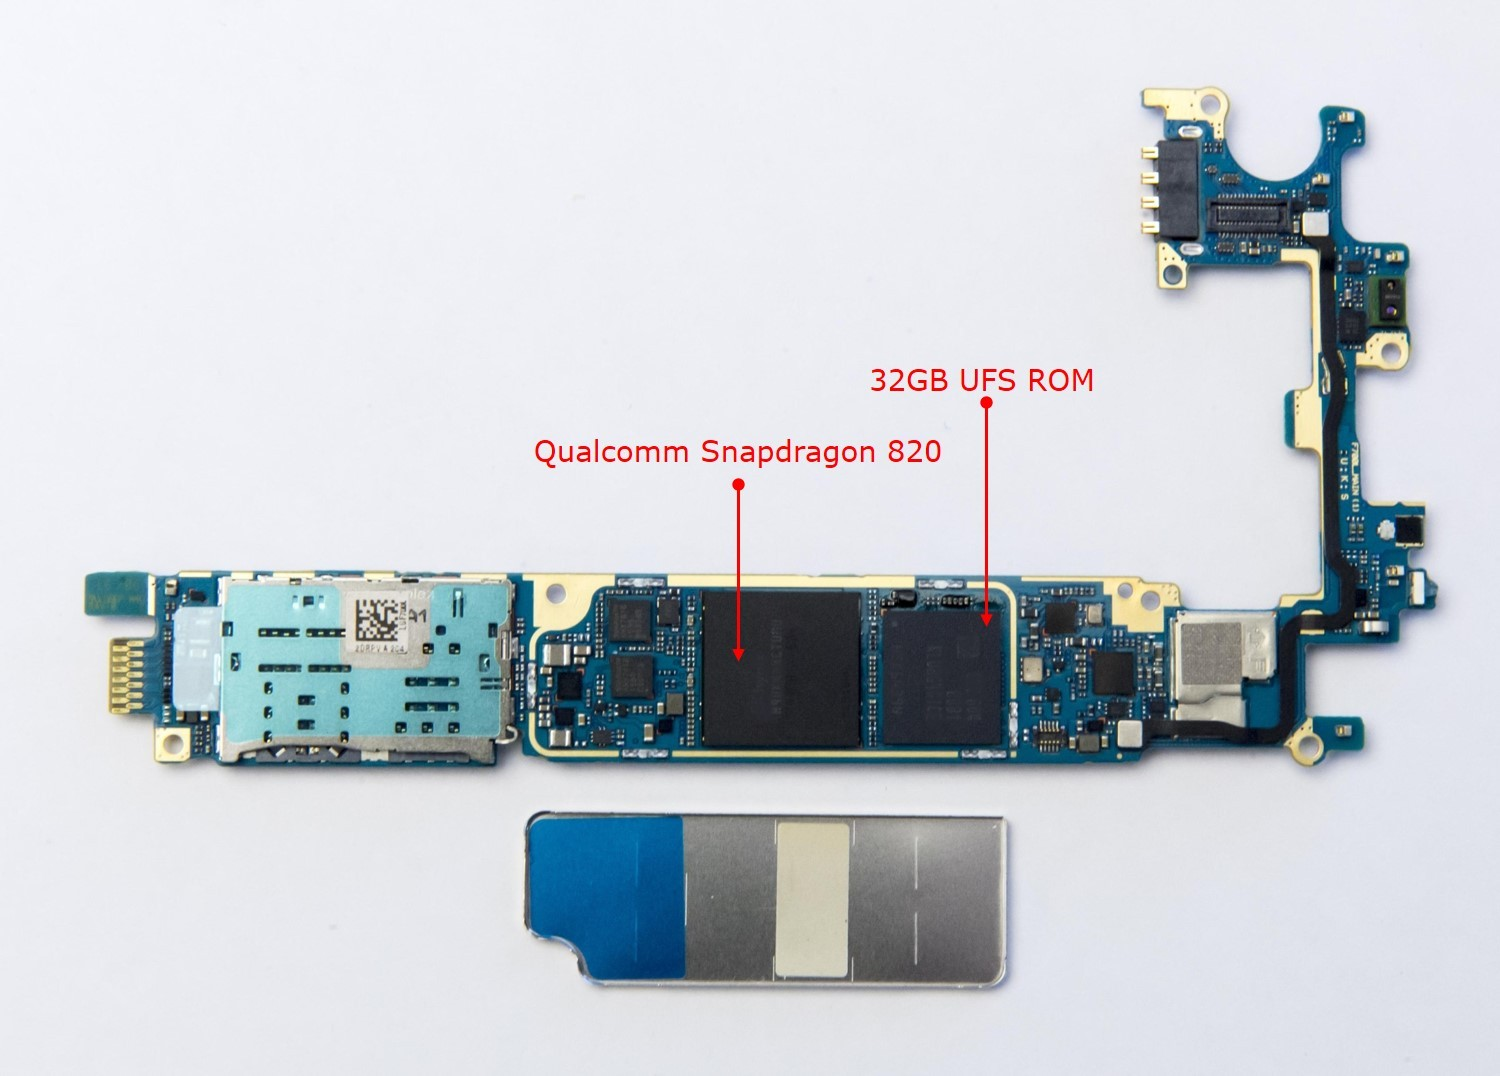 The Qualcomm Snapdragon 820 and 32GB Universal Flash Storage (UFS) ROM